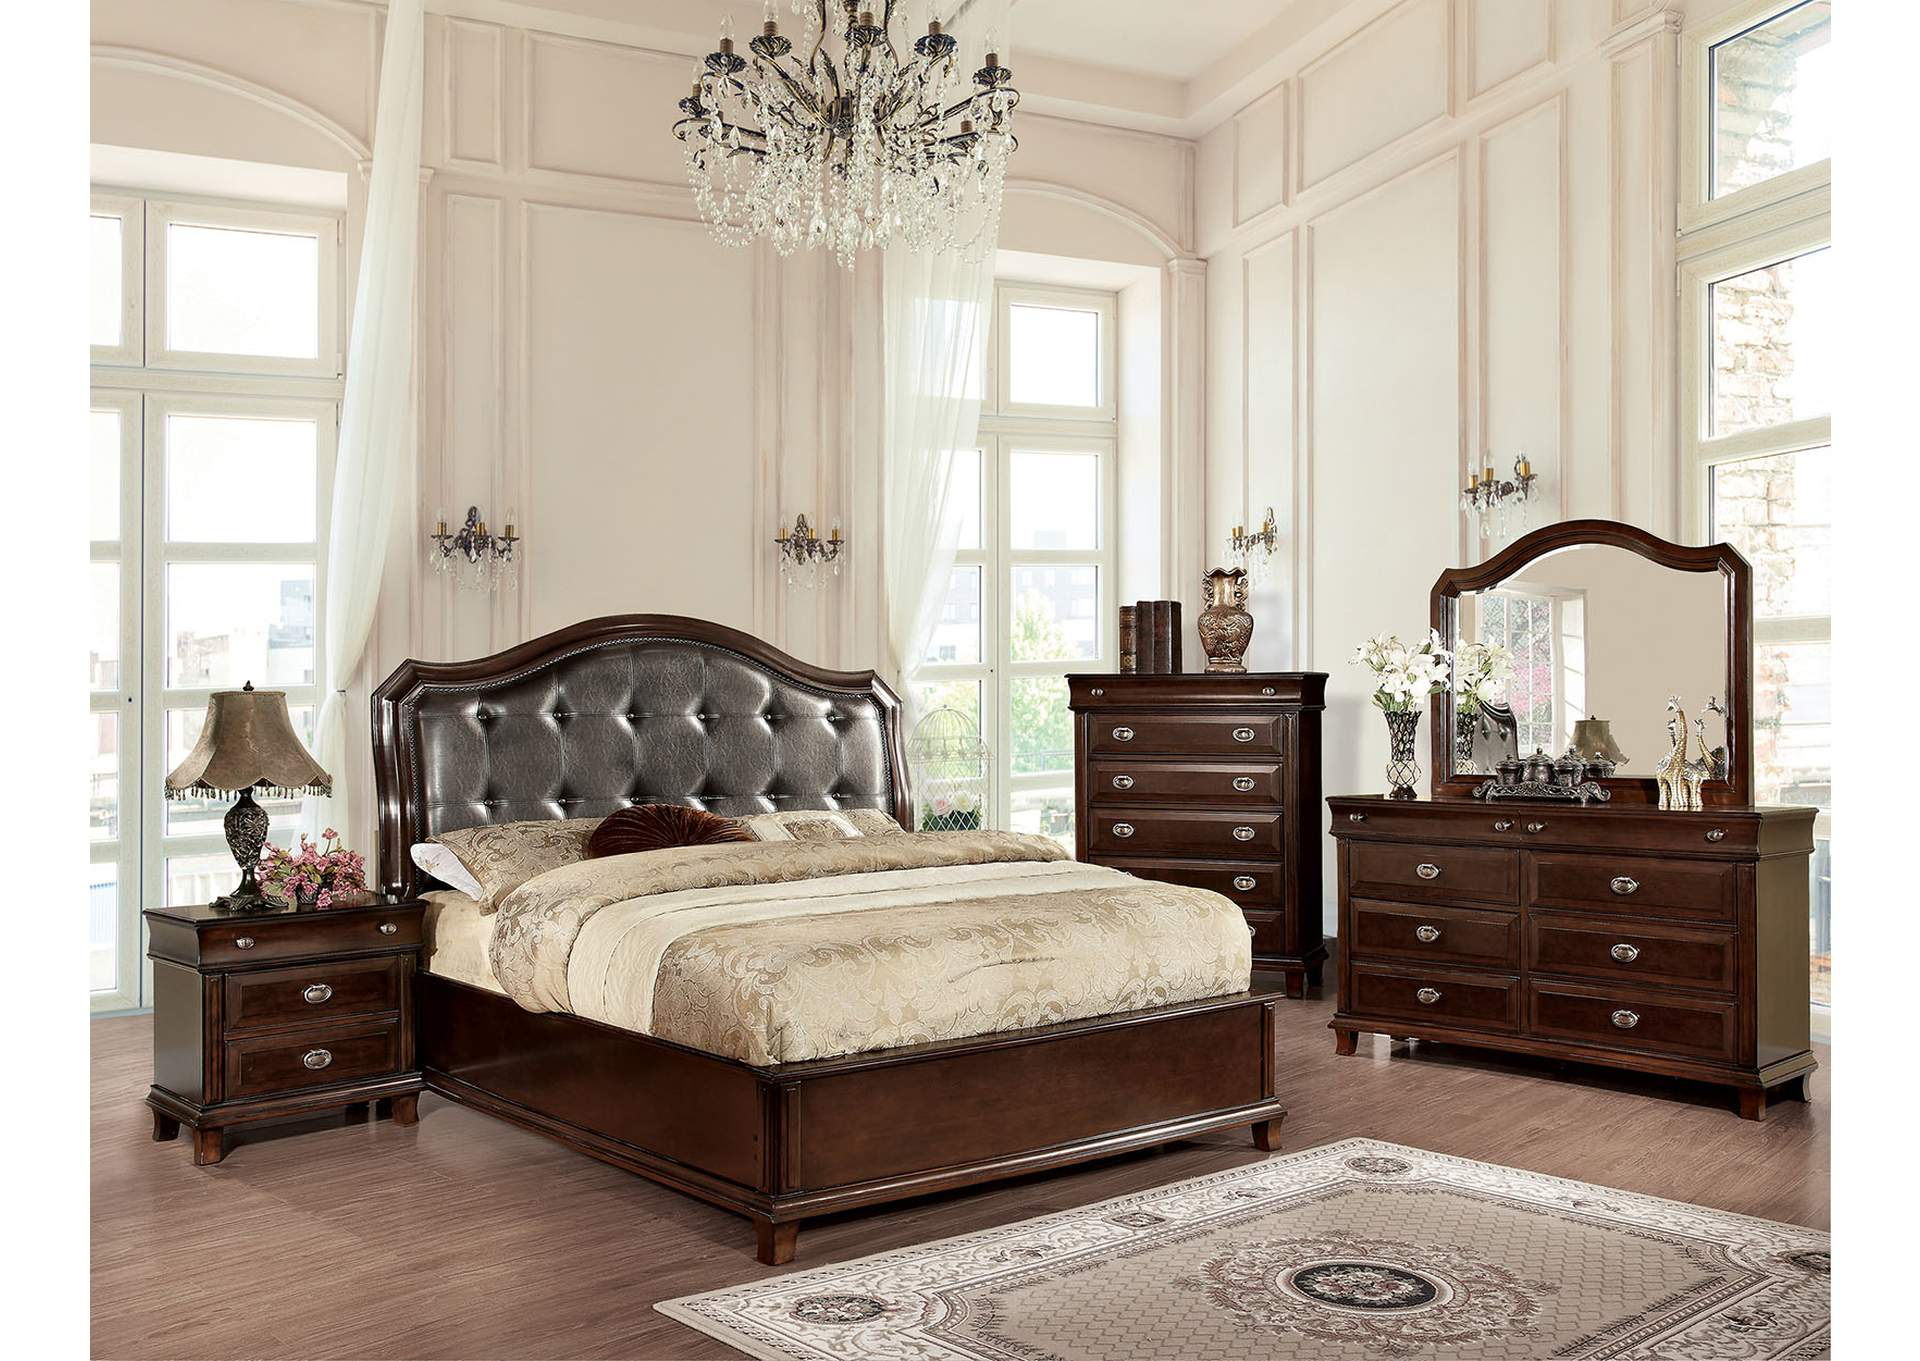 bedroom furniture miami furniture ville bronx ny arden brown cherry dresser 10466